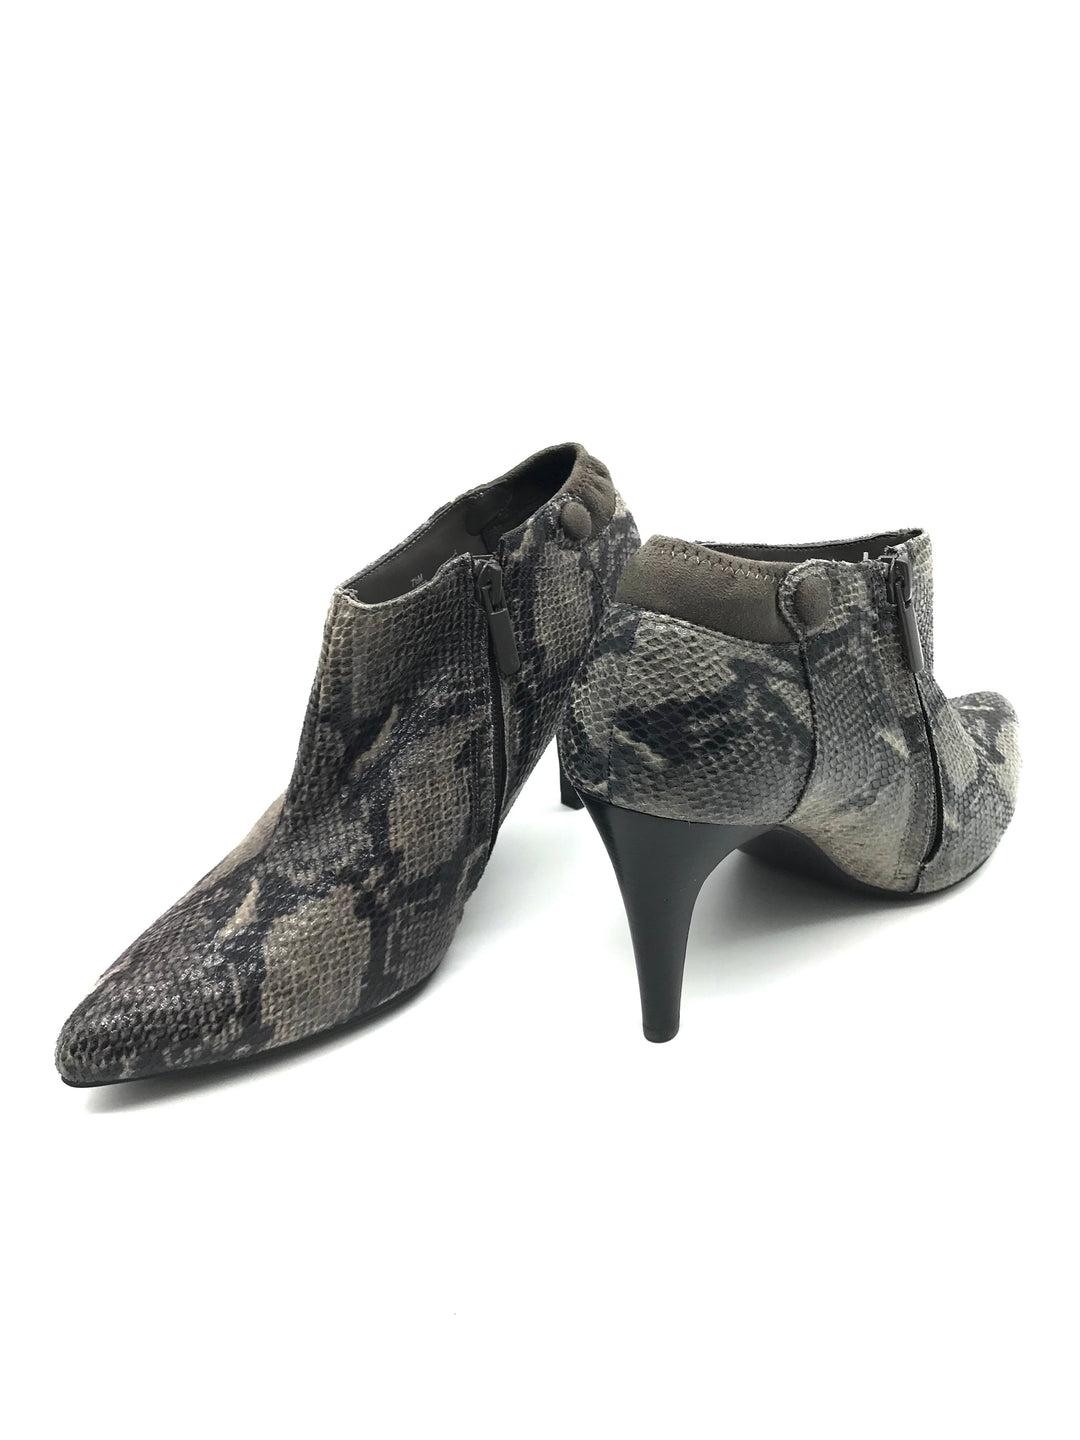 Primary Photo - BRAND: IMPO <BR>STYLE: BOOTS ANKLE <BR>COLOR: SNAKESKIN PRINT <BR>SIZE: 7.5 <BR>SKU: 262-26275-73274